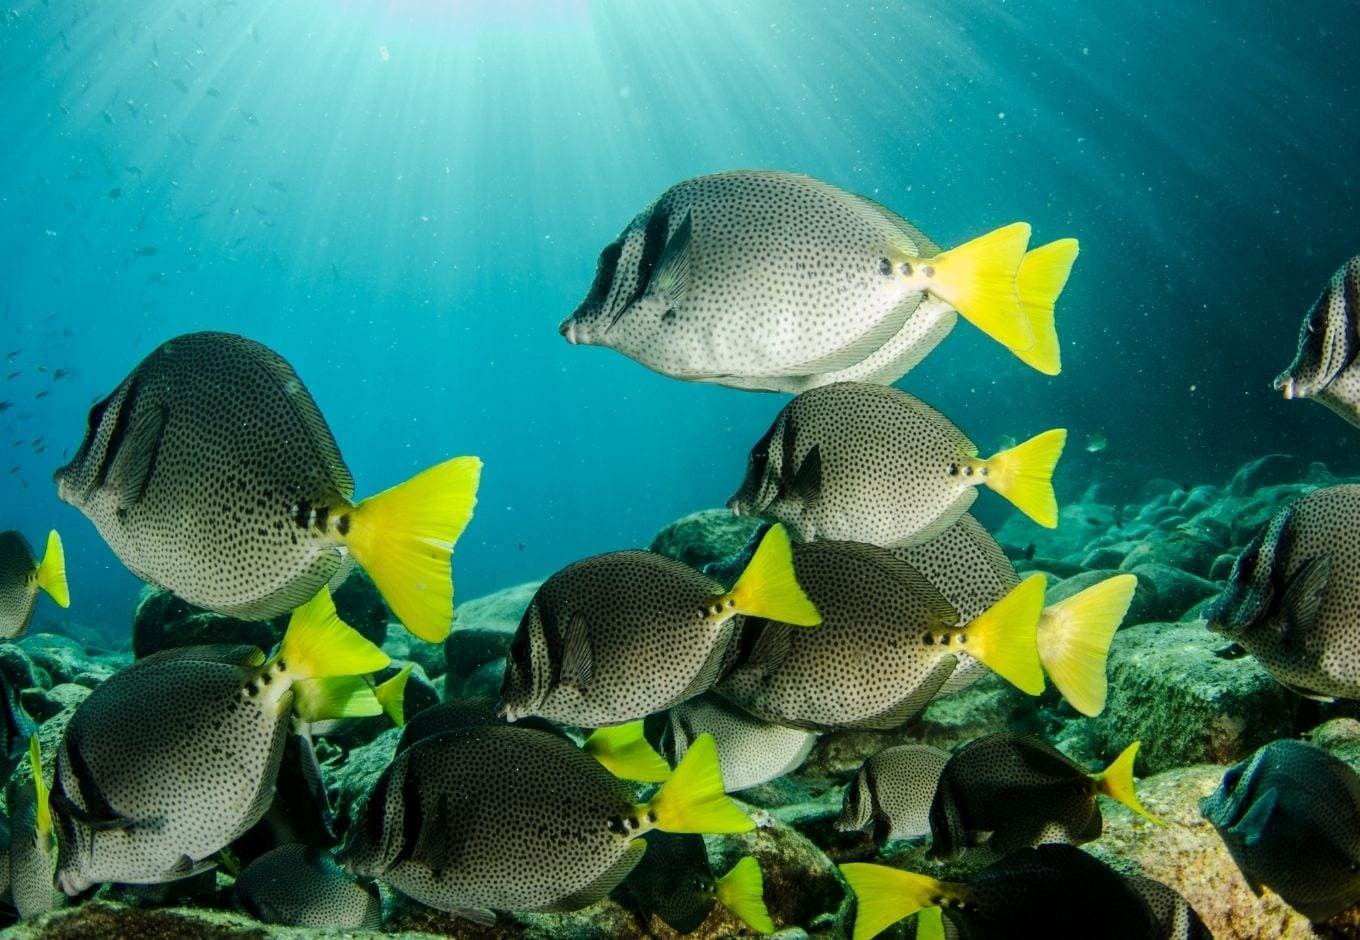 A school of fish swimming in the sea.